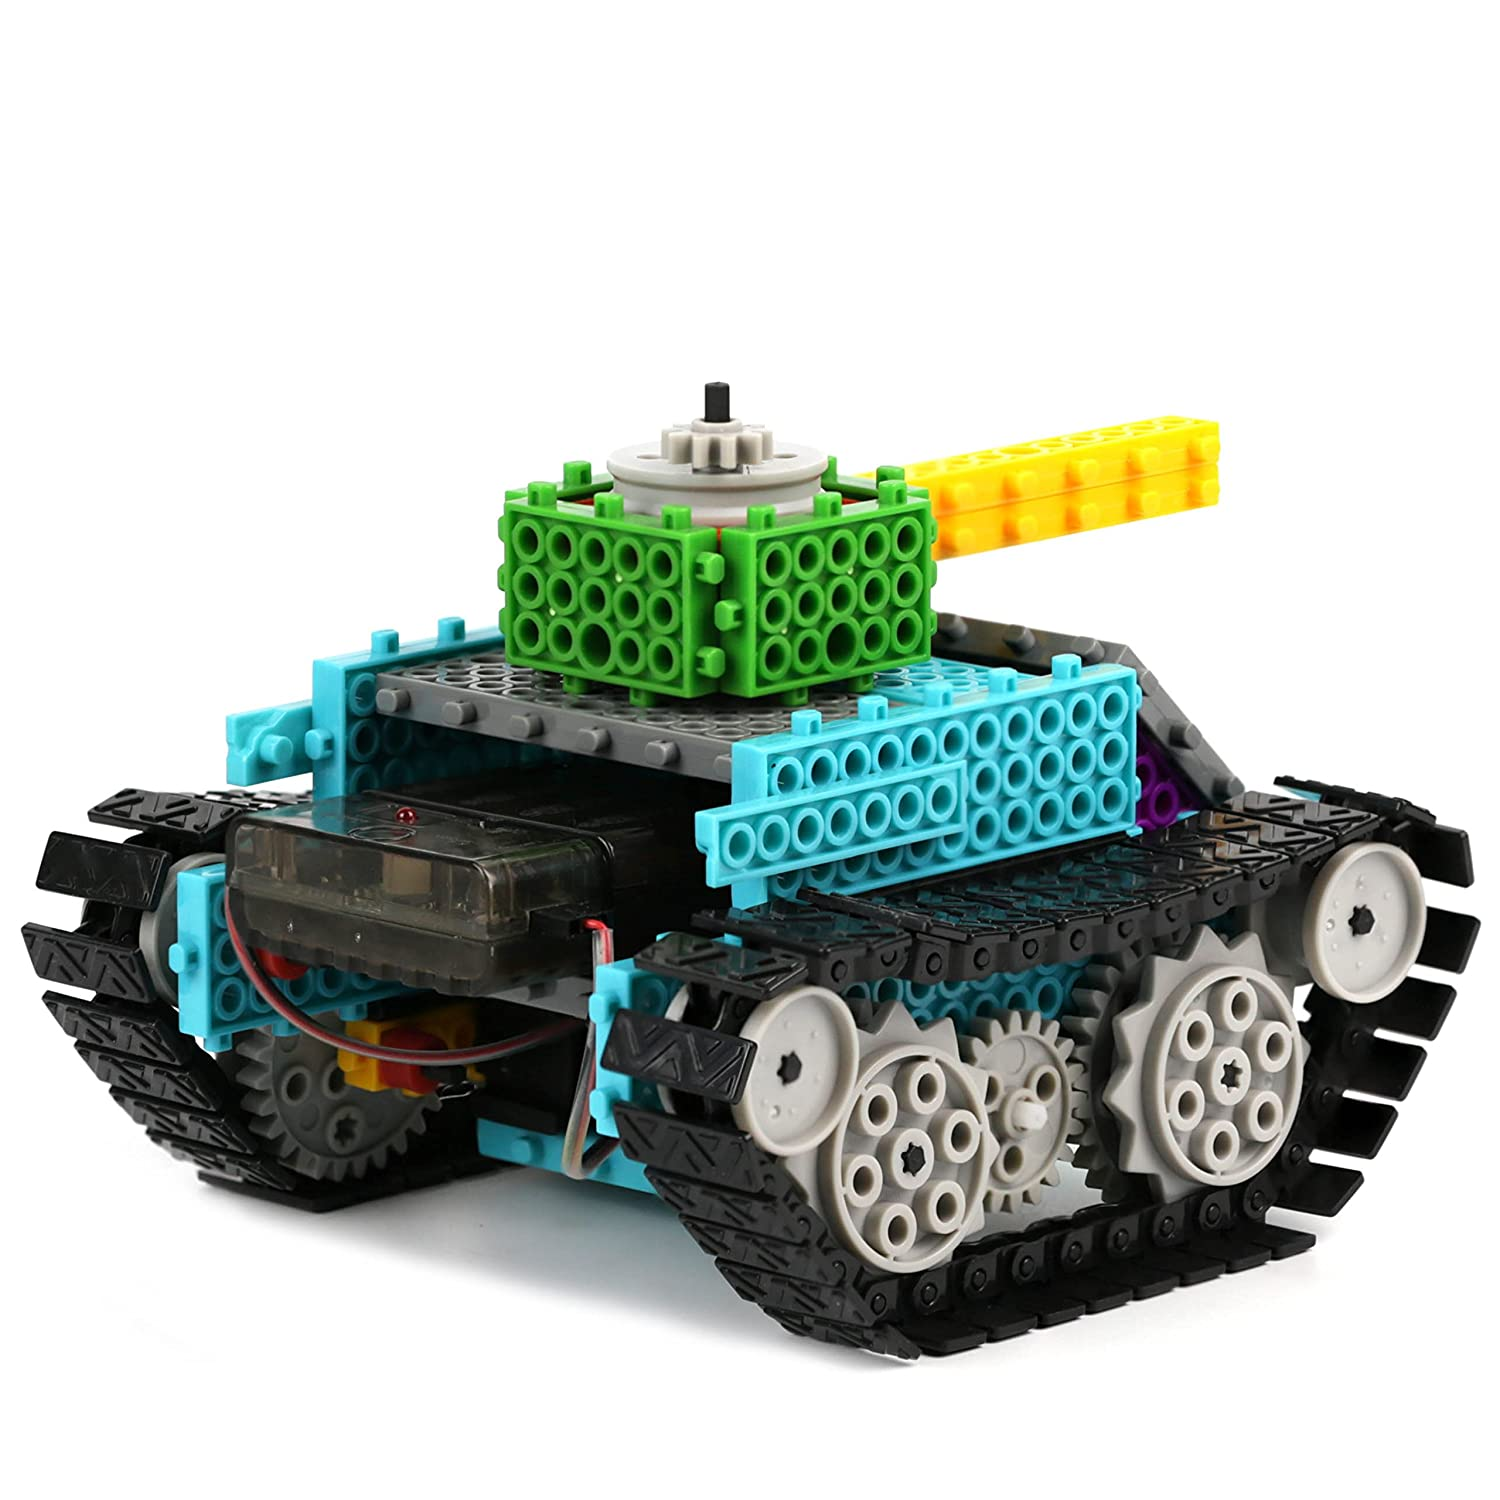 Amazon Remote Control Building Kits for Boy Gift STEM Robot